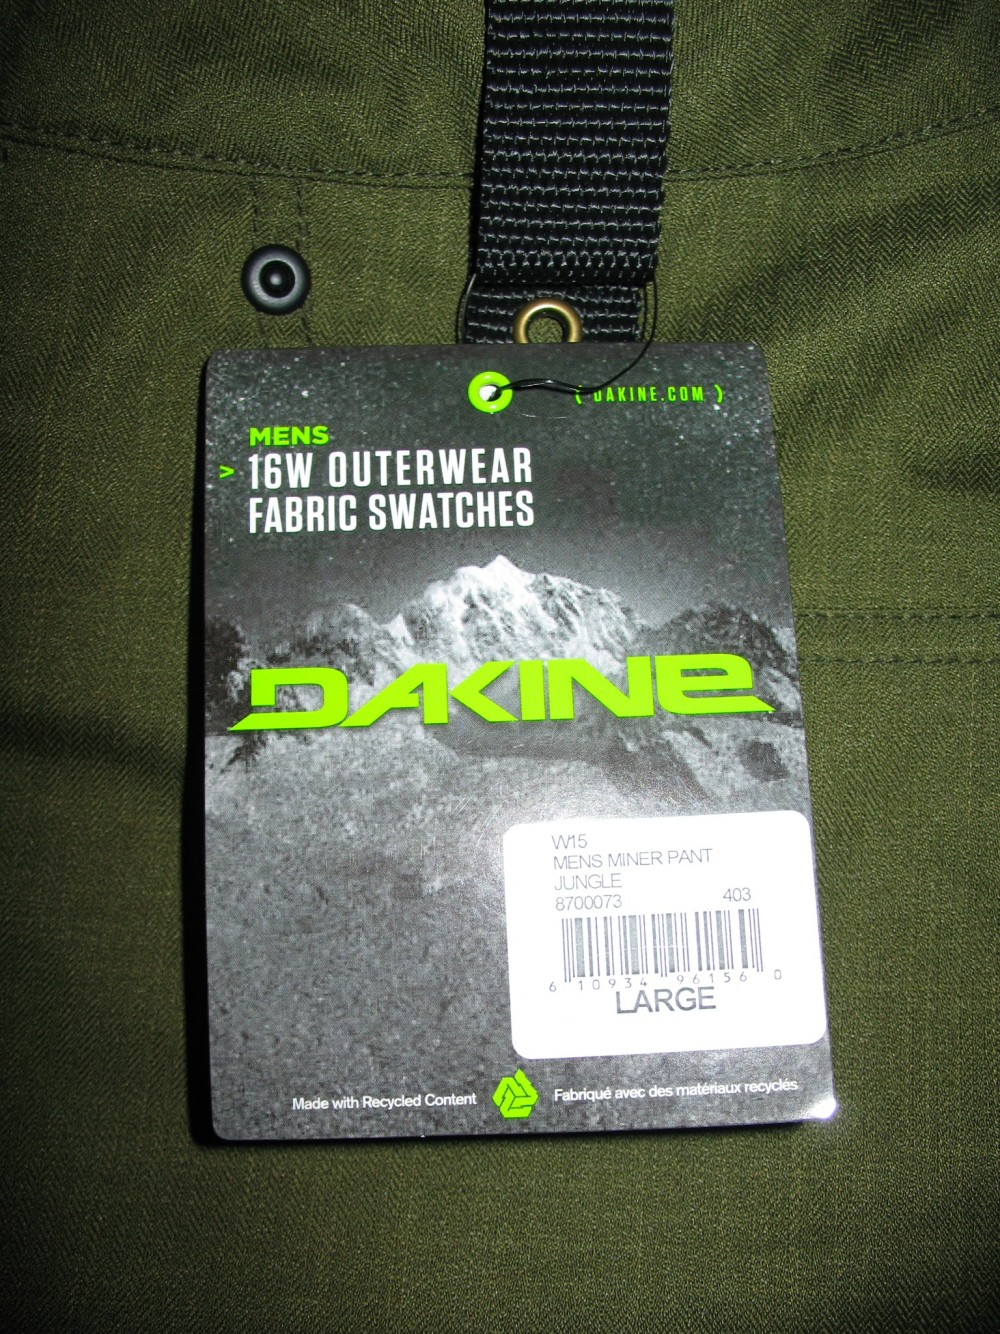 Штаны DAKINE Miner jungle ski/snowboard pants (размер L) - 10